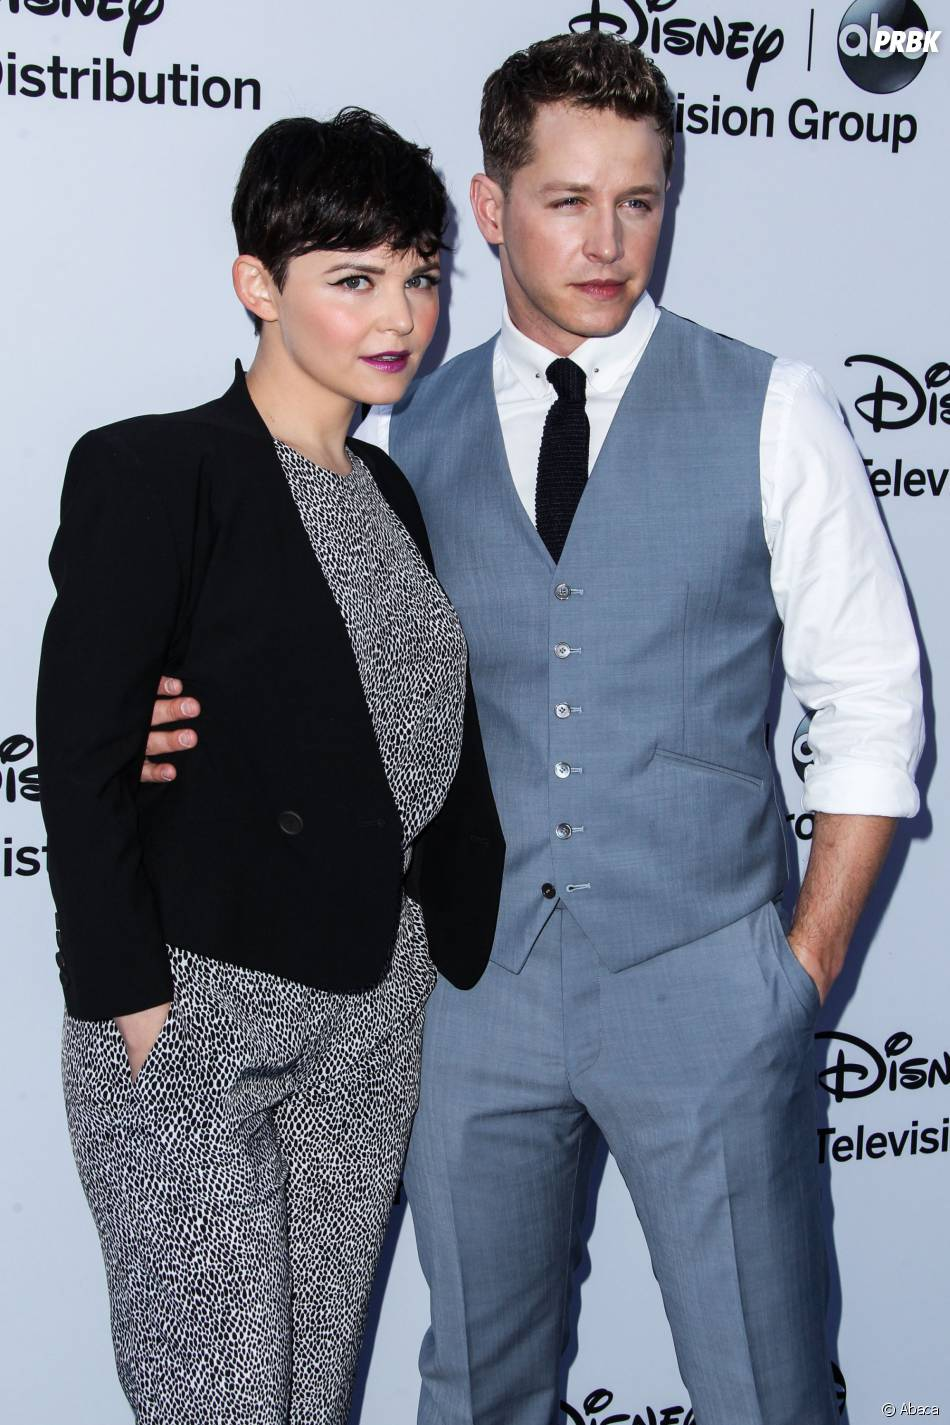 Once Upon a Time : Ginnifer Goodwin et Josh Dallas auront un nouvel enfant en 2016